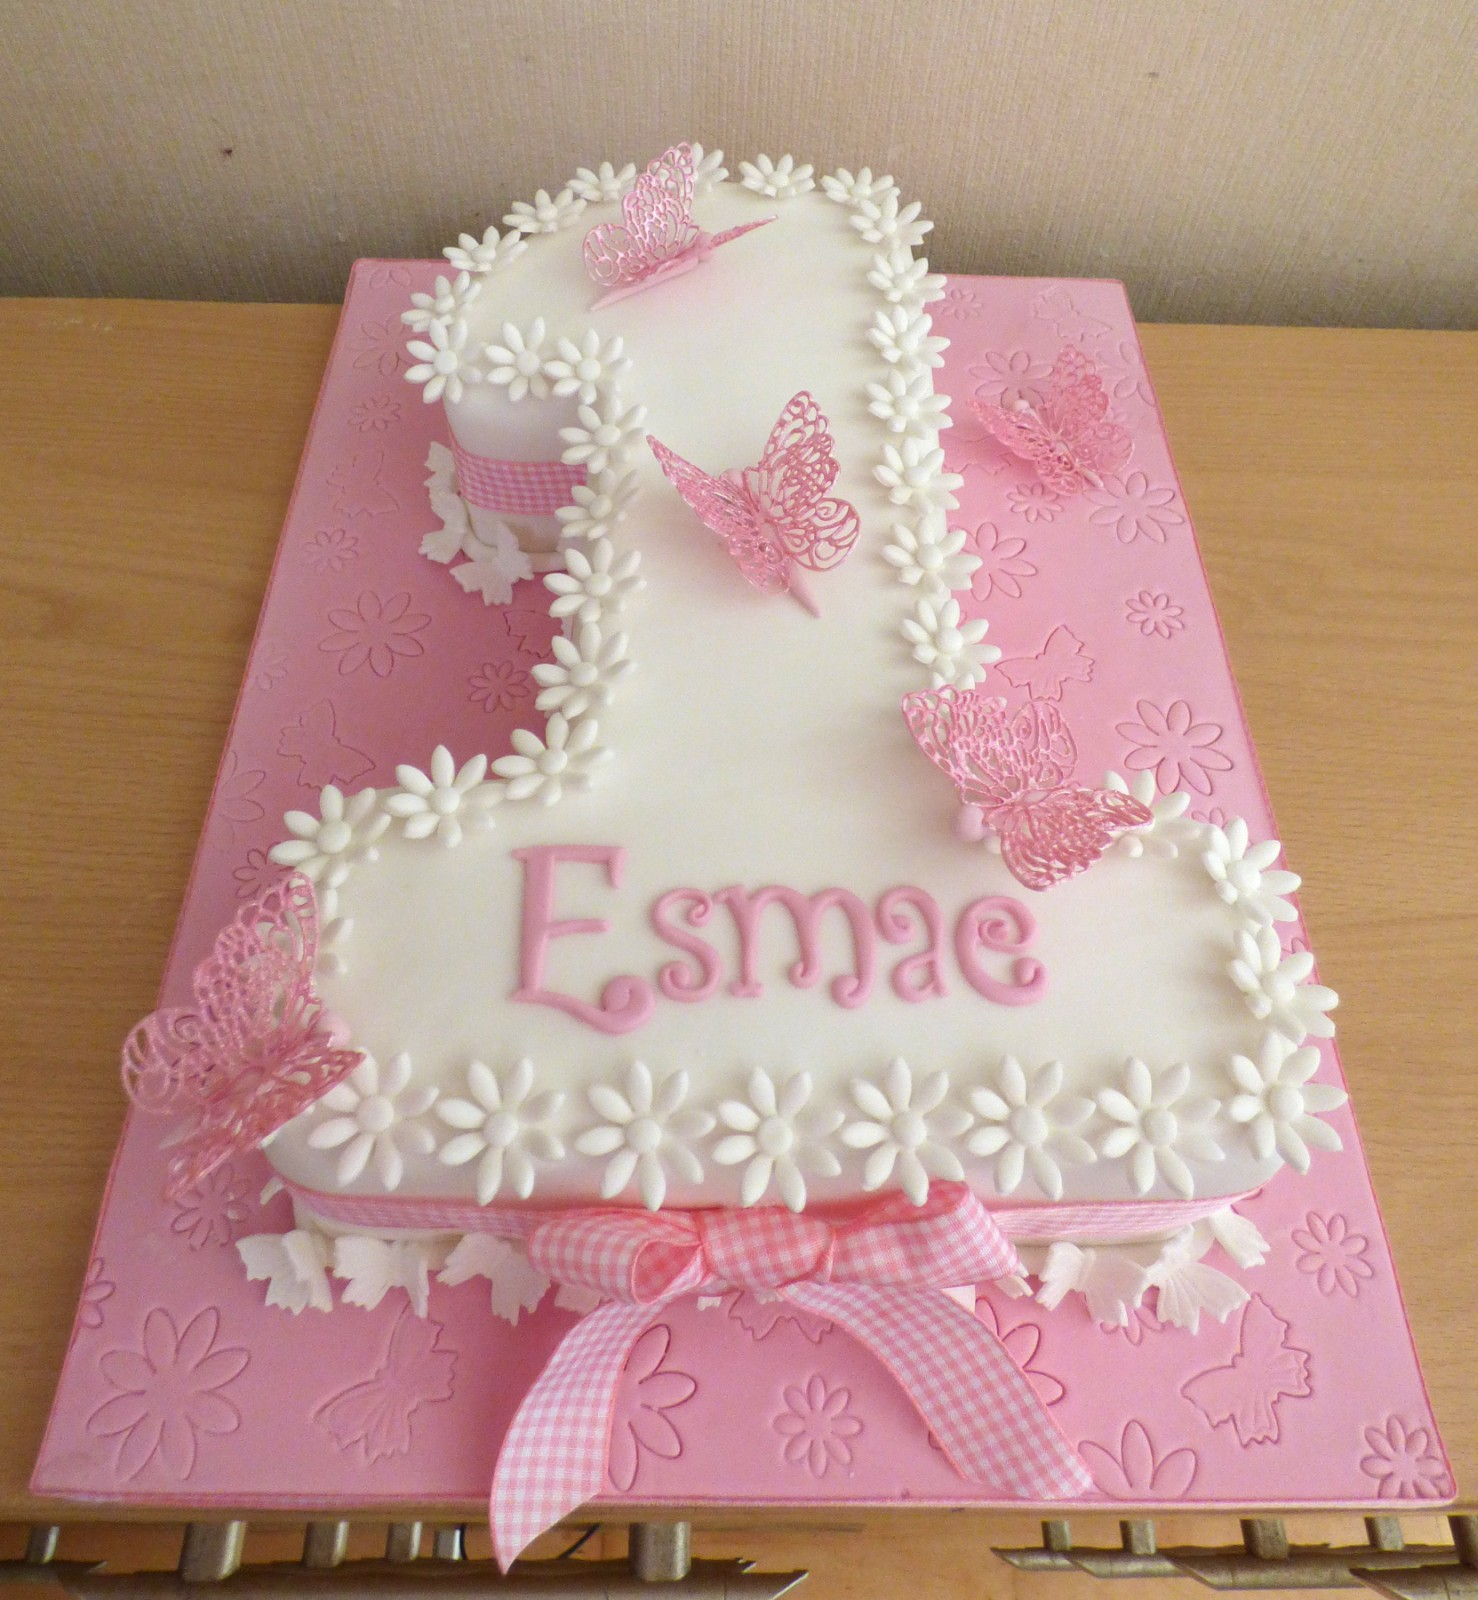 Fine Pretty Number 1 Birthday Cake With Daisies And Butterflies Personalised Birthday Cards Petedlily Jamesorg